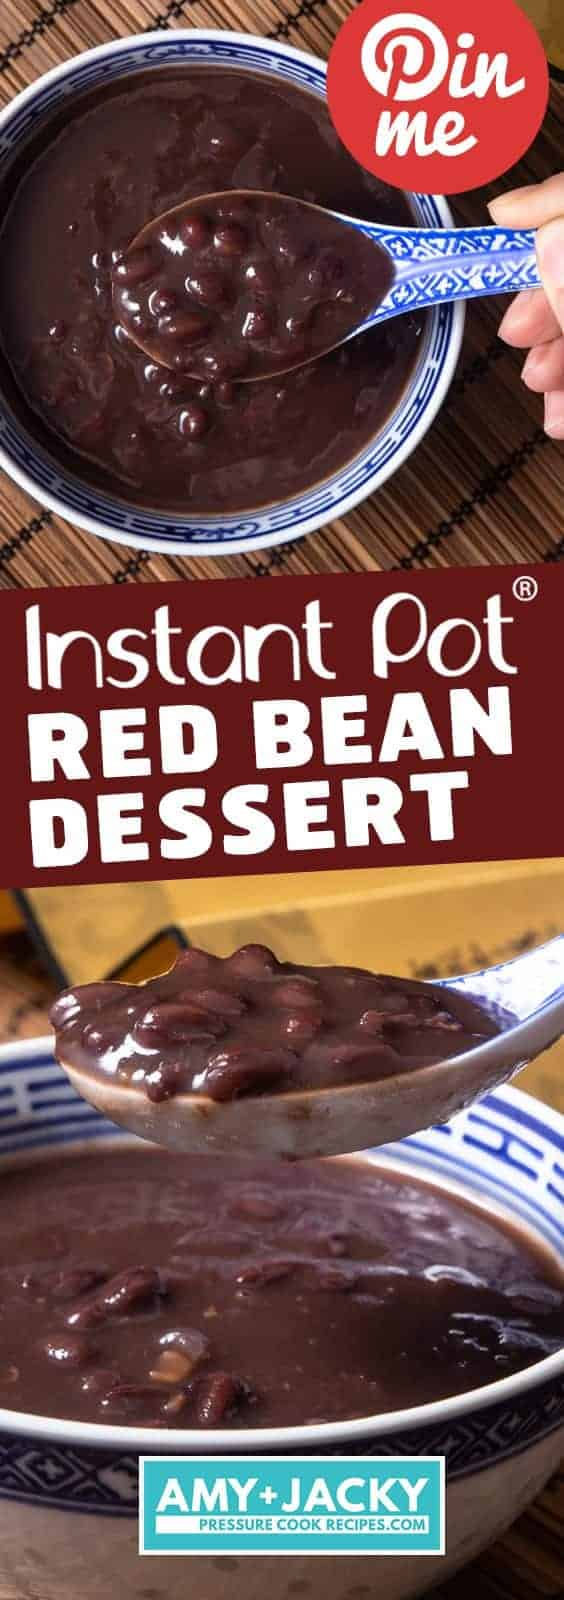 Instant Pot Red Bean Soup | Pressure Cooker Red Bean Soup | 紅豆沙 | 紅豆湯 | 糖水 | 壓力鍋食譜 | Instant Pot Chinese Recipes | Instant Pot Desserts | Instant Pot Recipes #instantpot #recipes #chinese #dessert #easy #sweet